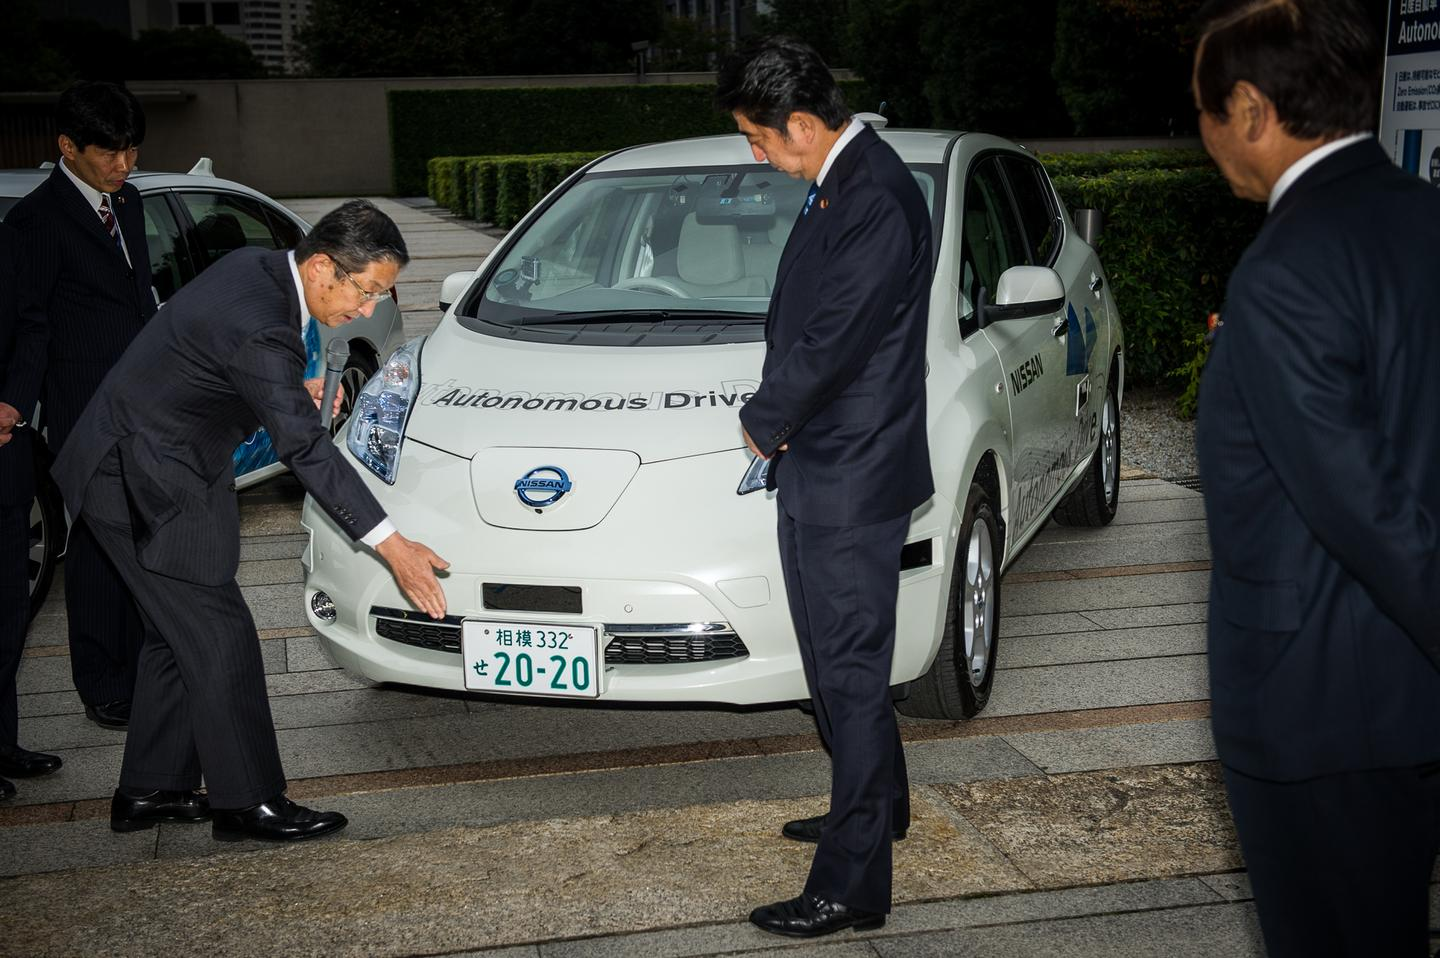 The event marked the first time autonomous cars have driven on public roads in Japan (Image: Nissan)